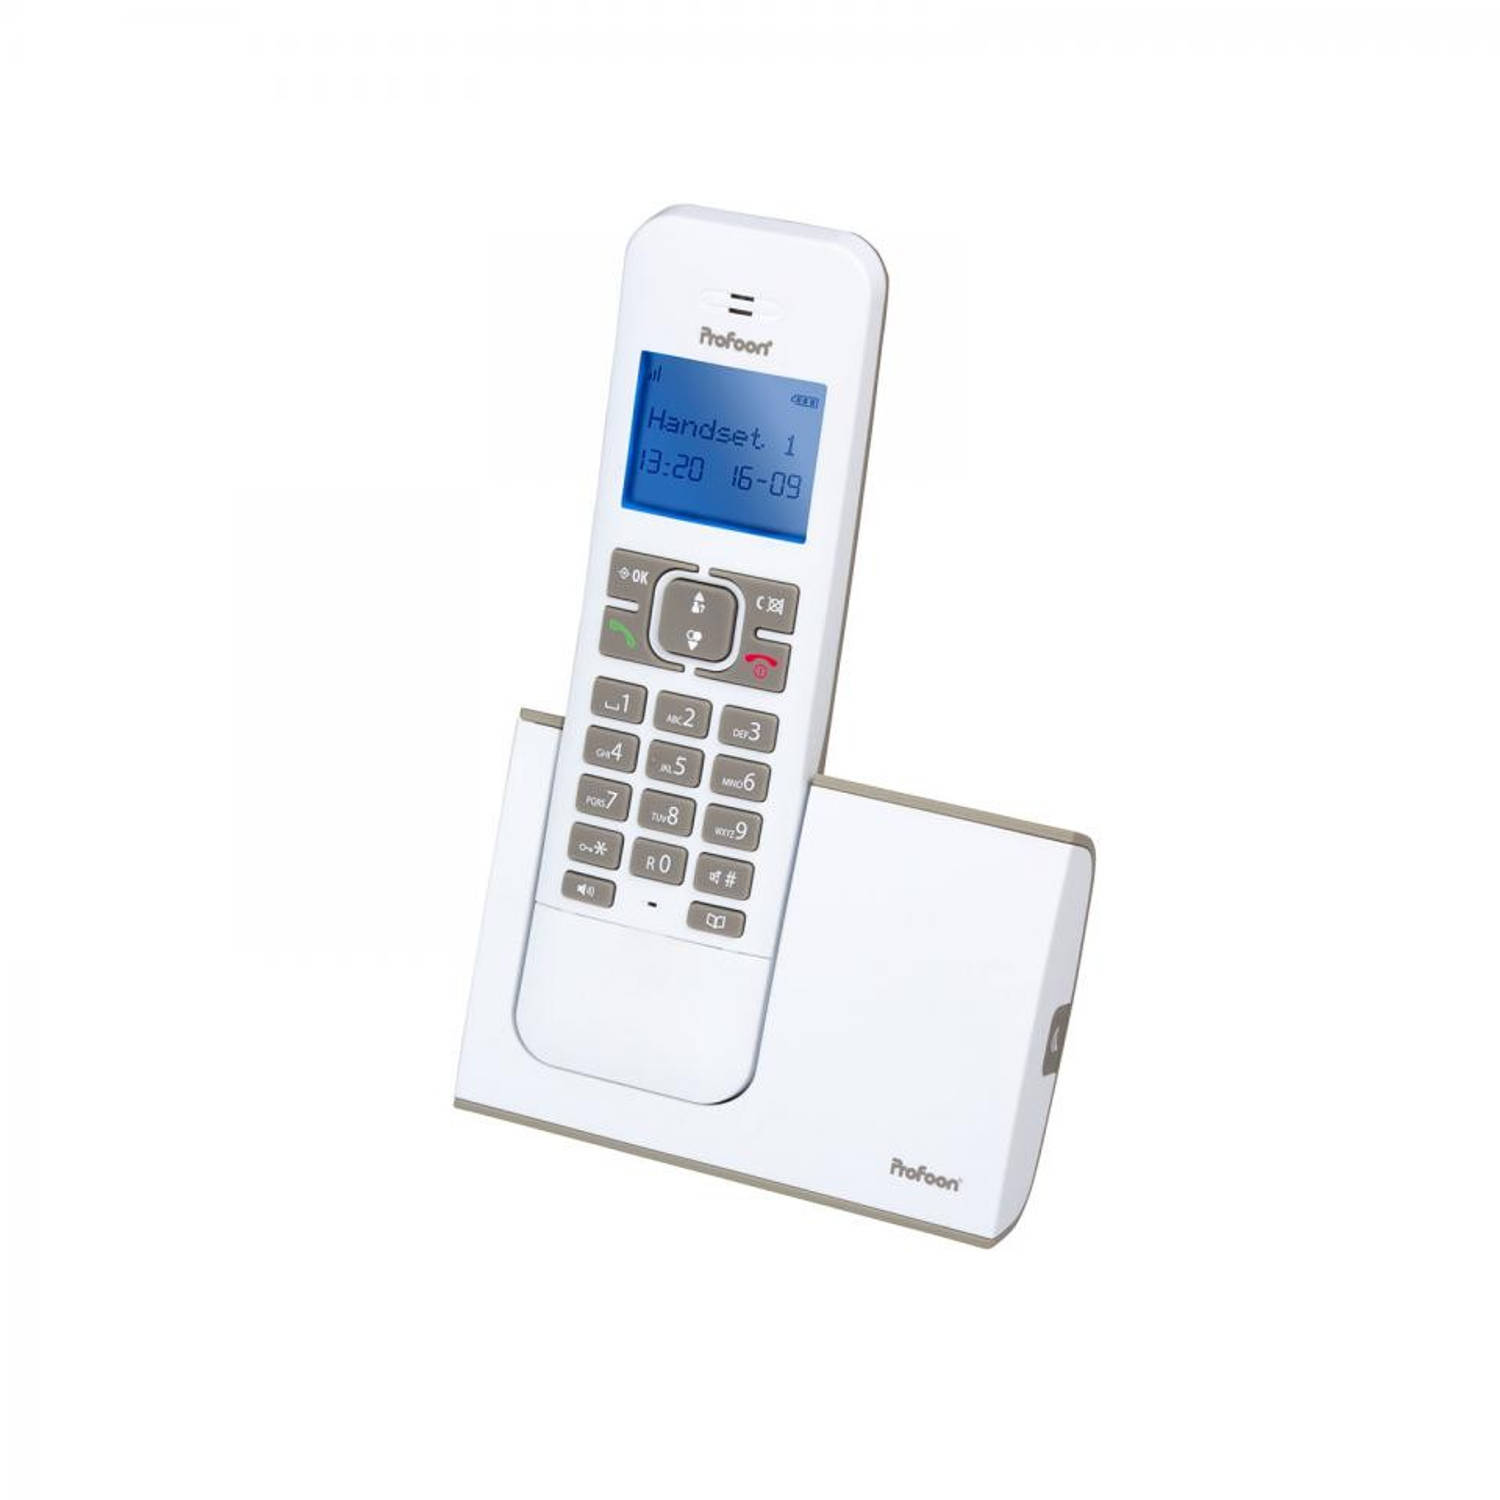 Korting Profoon DECT PDX 8400 WT TE